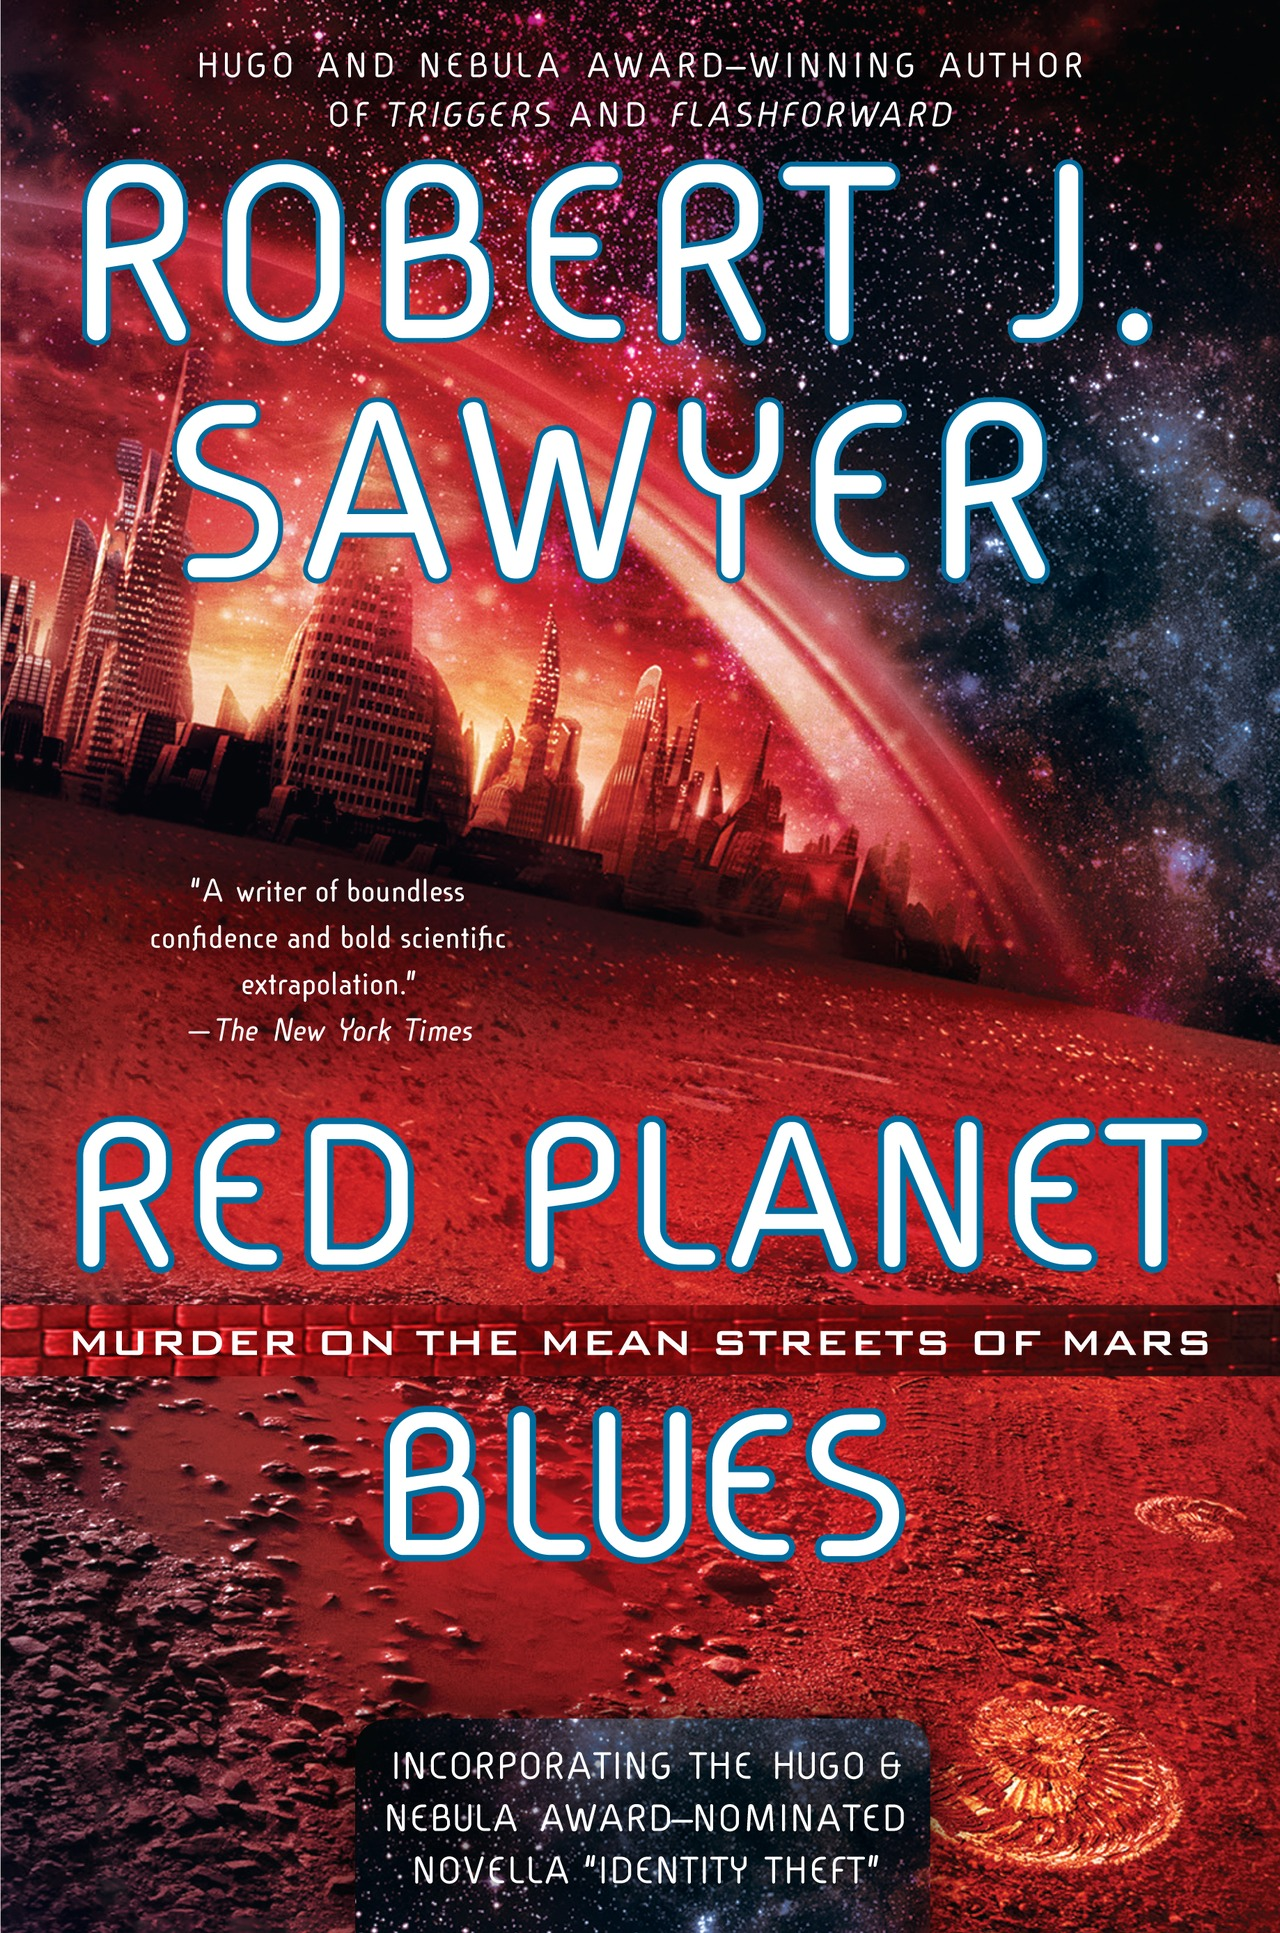 Red planet blues us cover